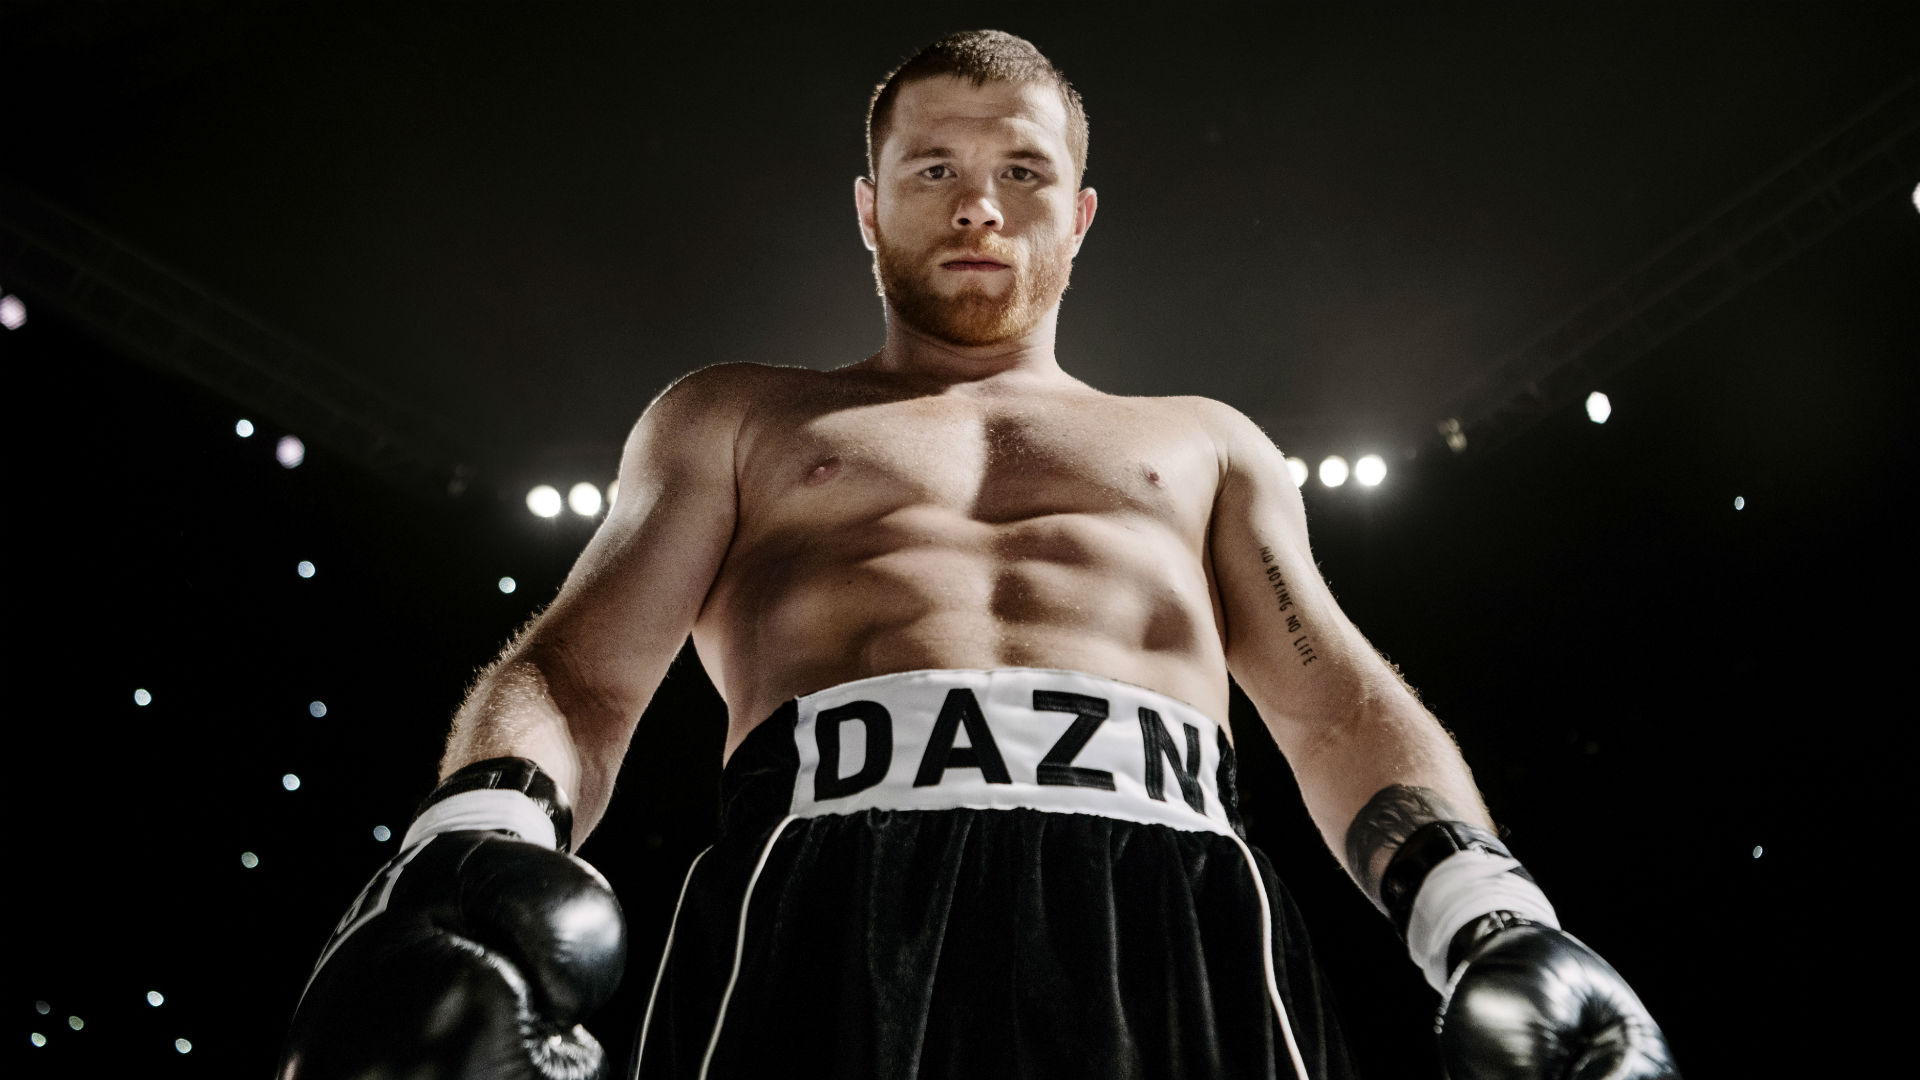 Cover image for DAZN financials: Growth reliant on premium domestic rights